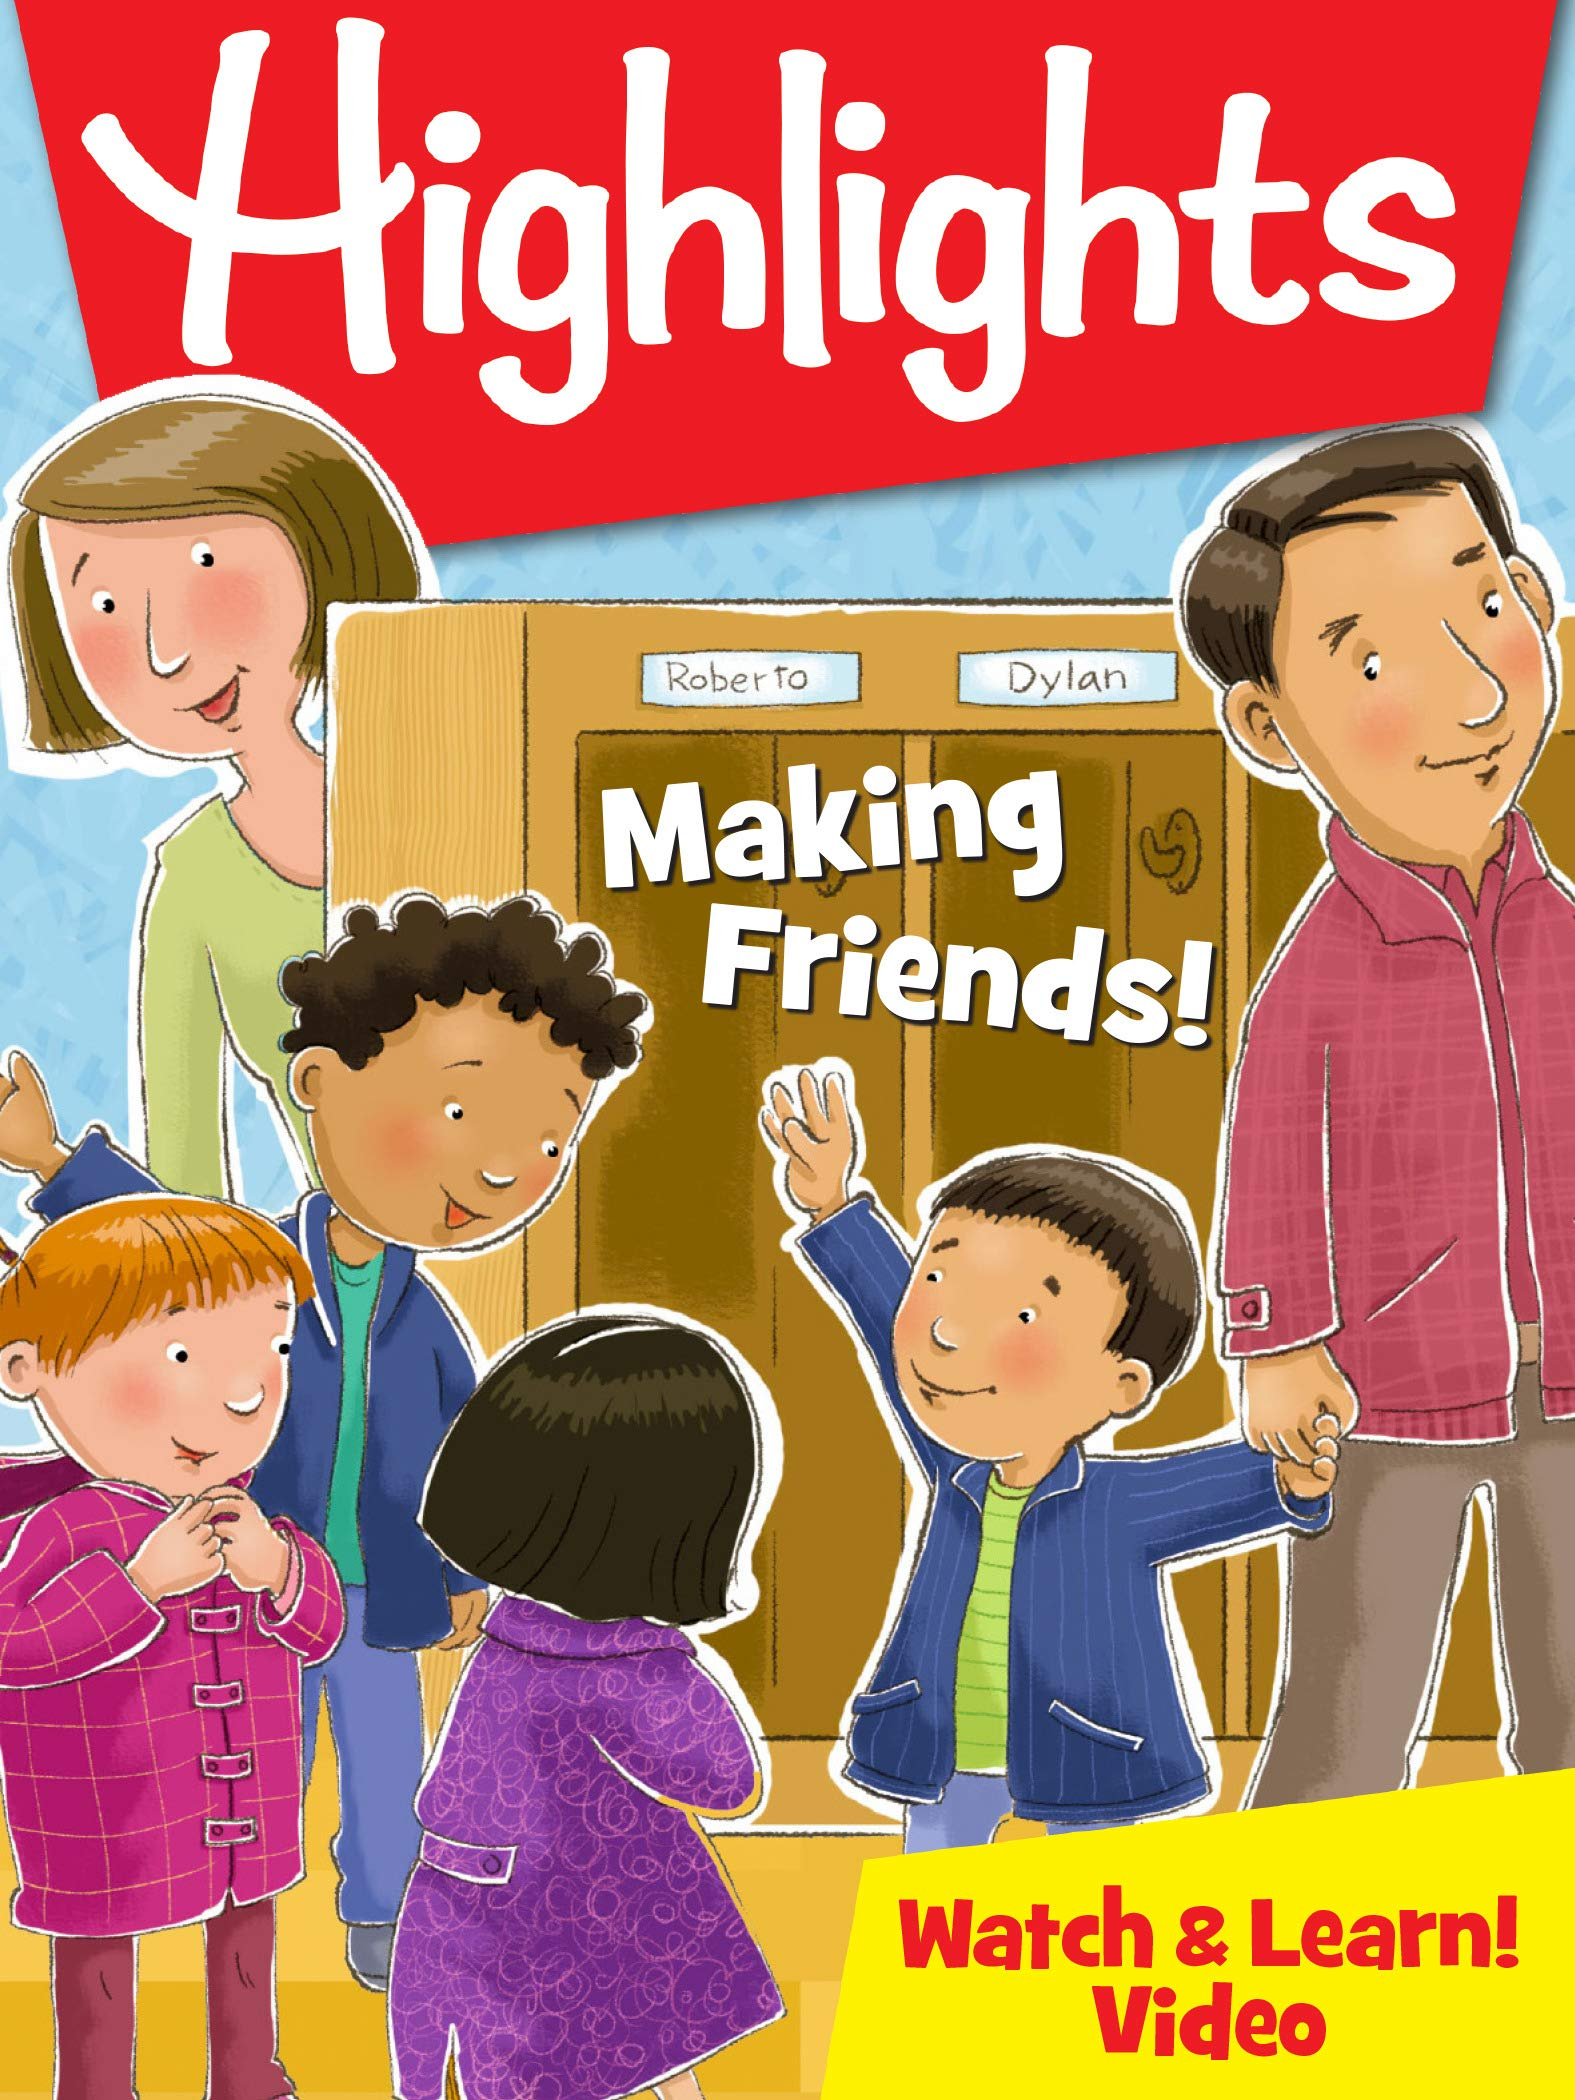 Highlights - Making Friends! on Amazon Prime Instant Video UK